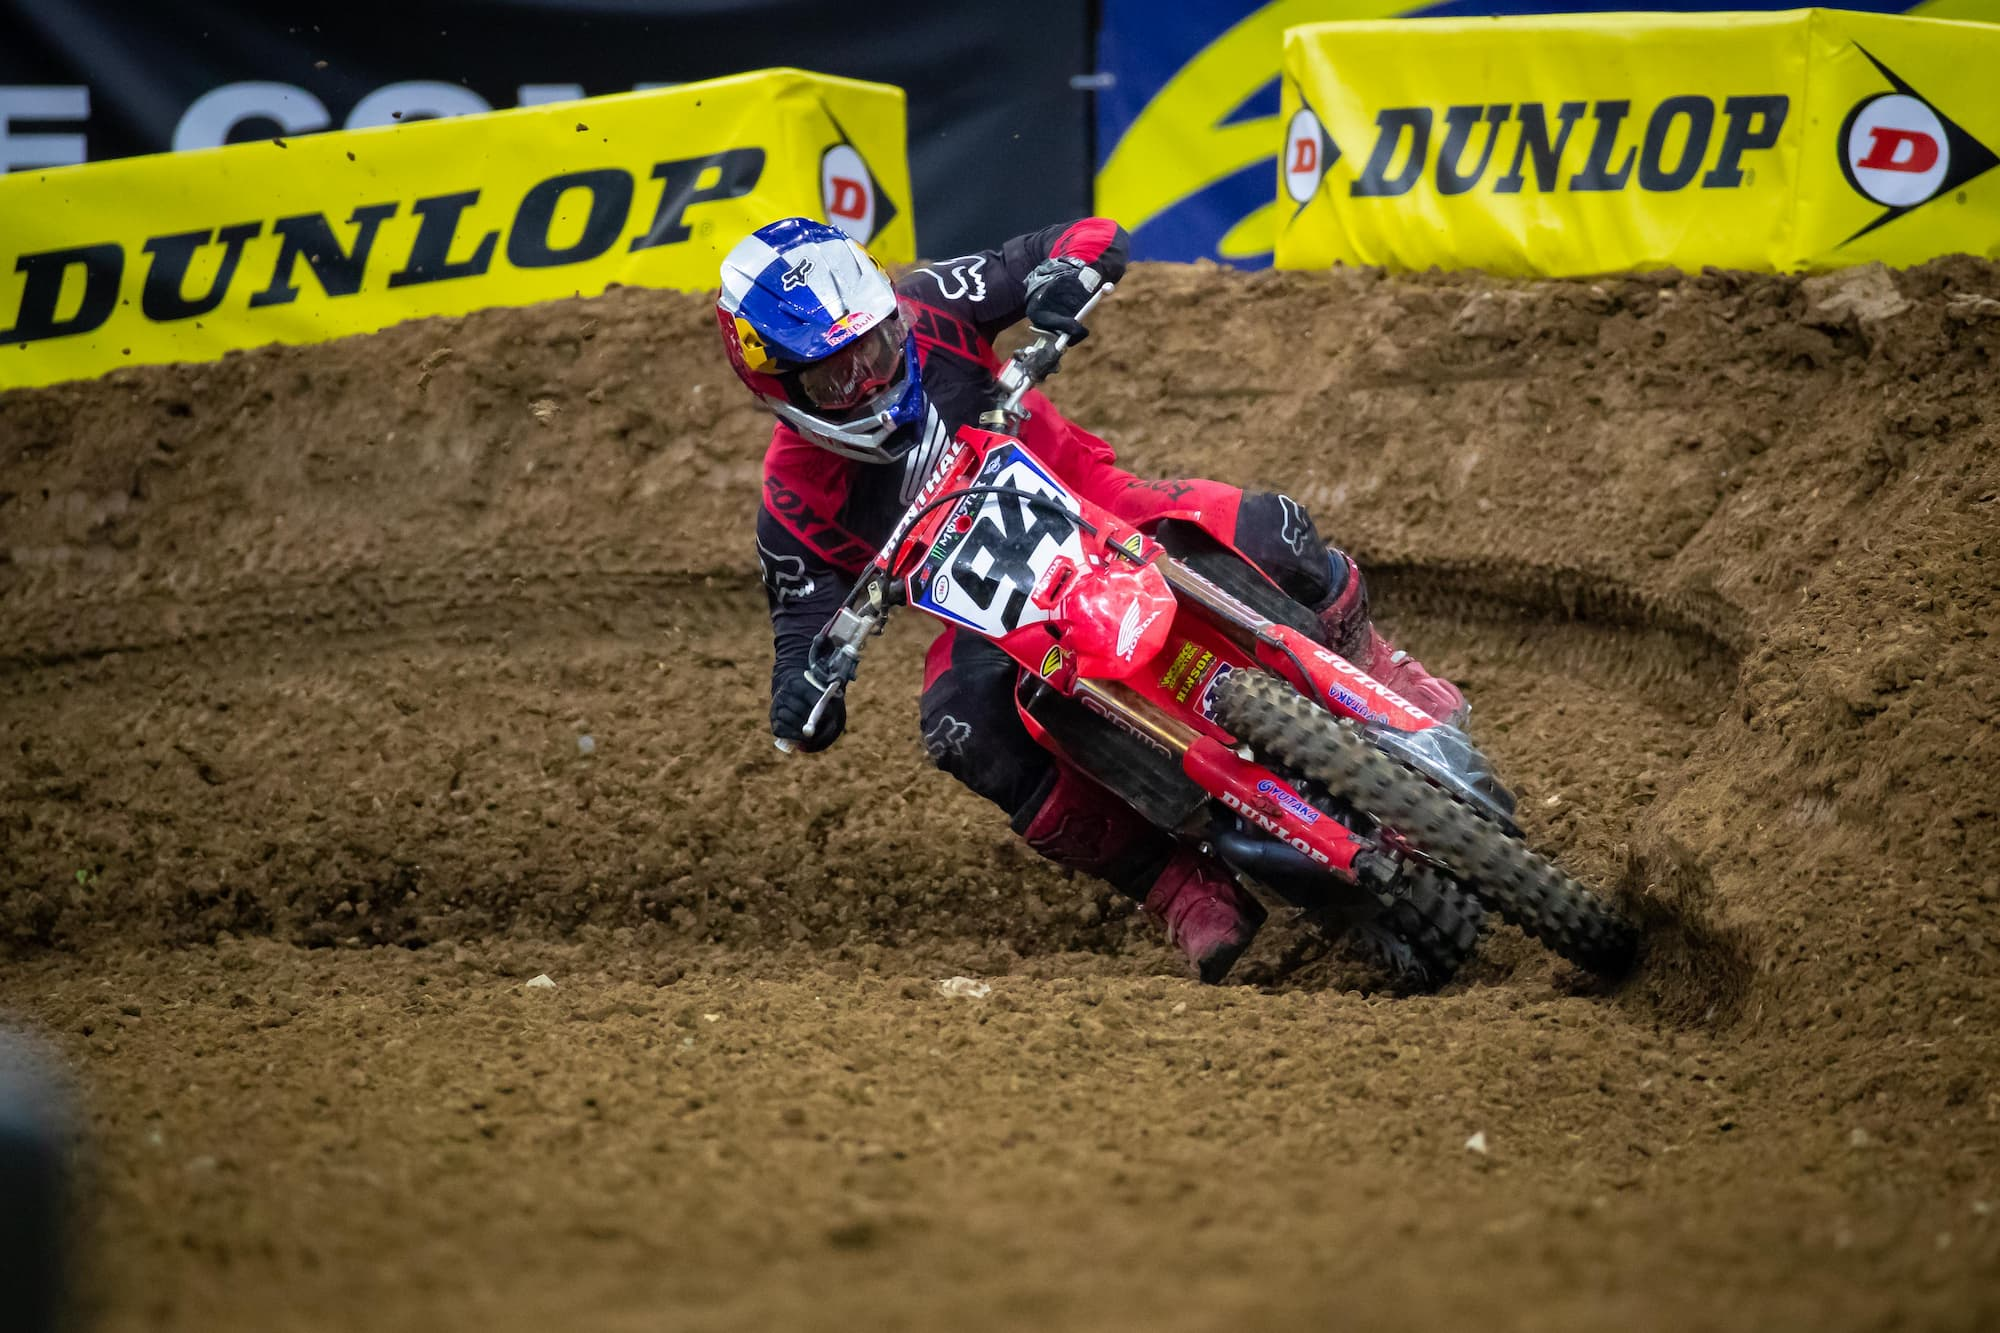 Ken Roczen is penalized at Houston 2 for violating the medical flag.